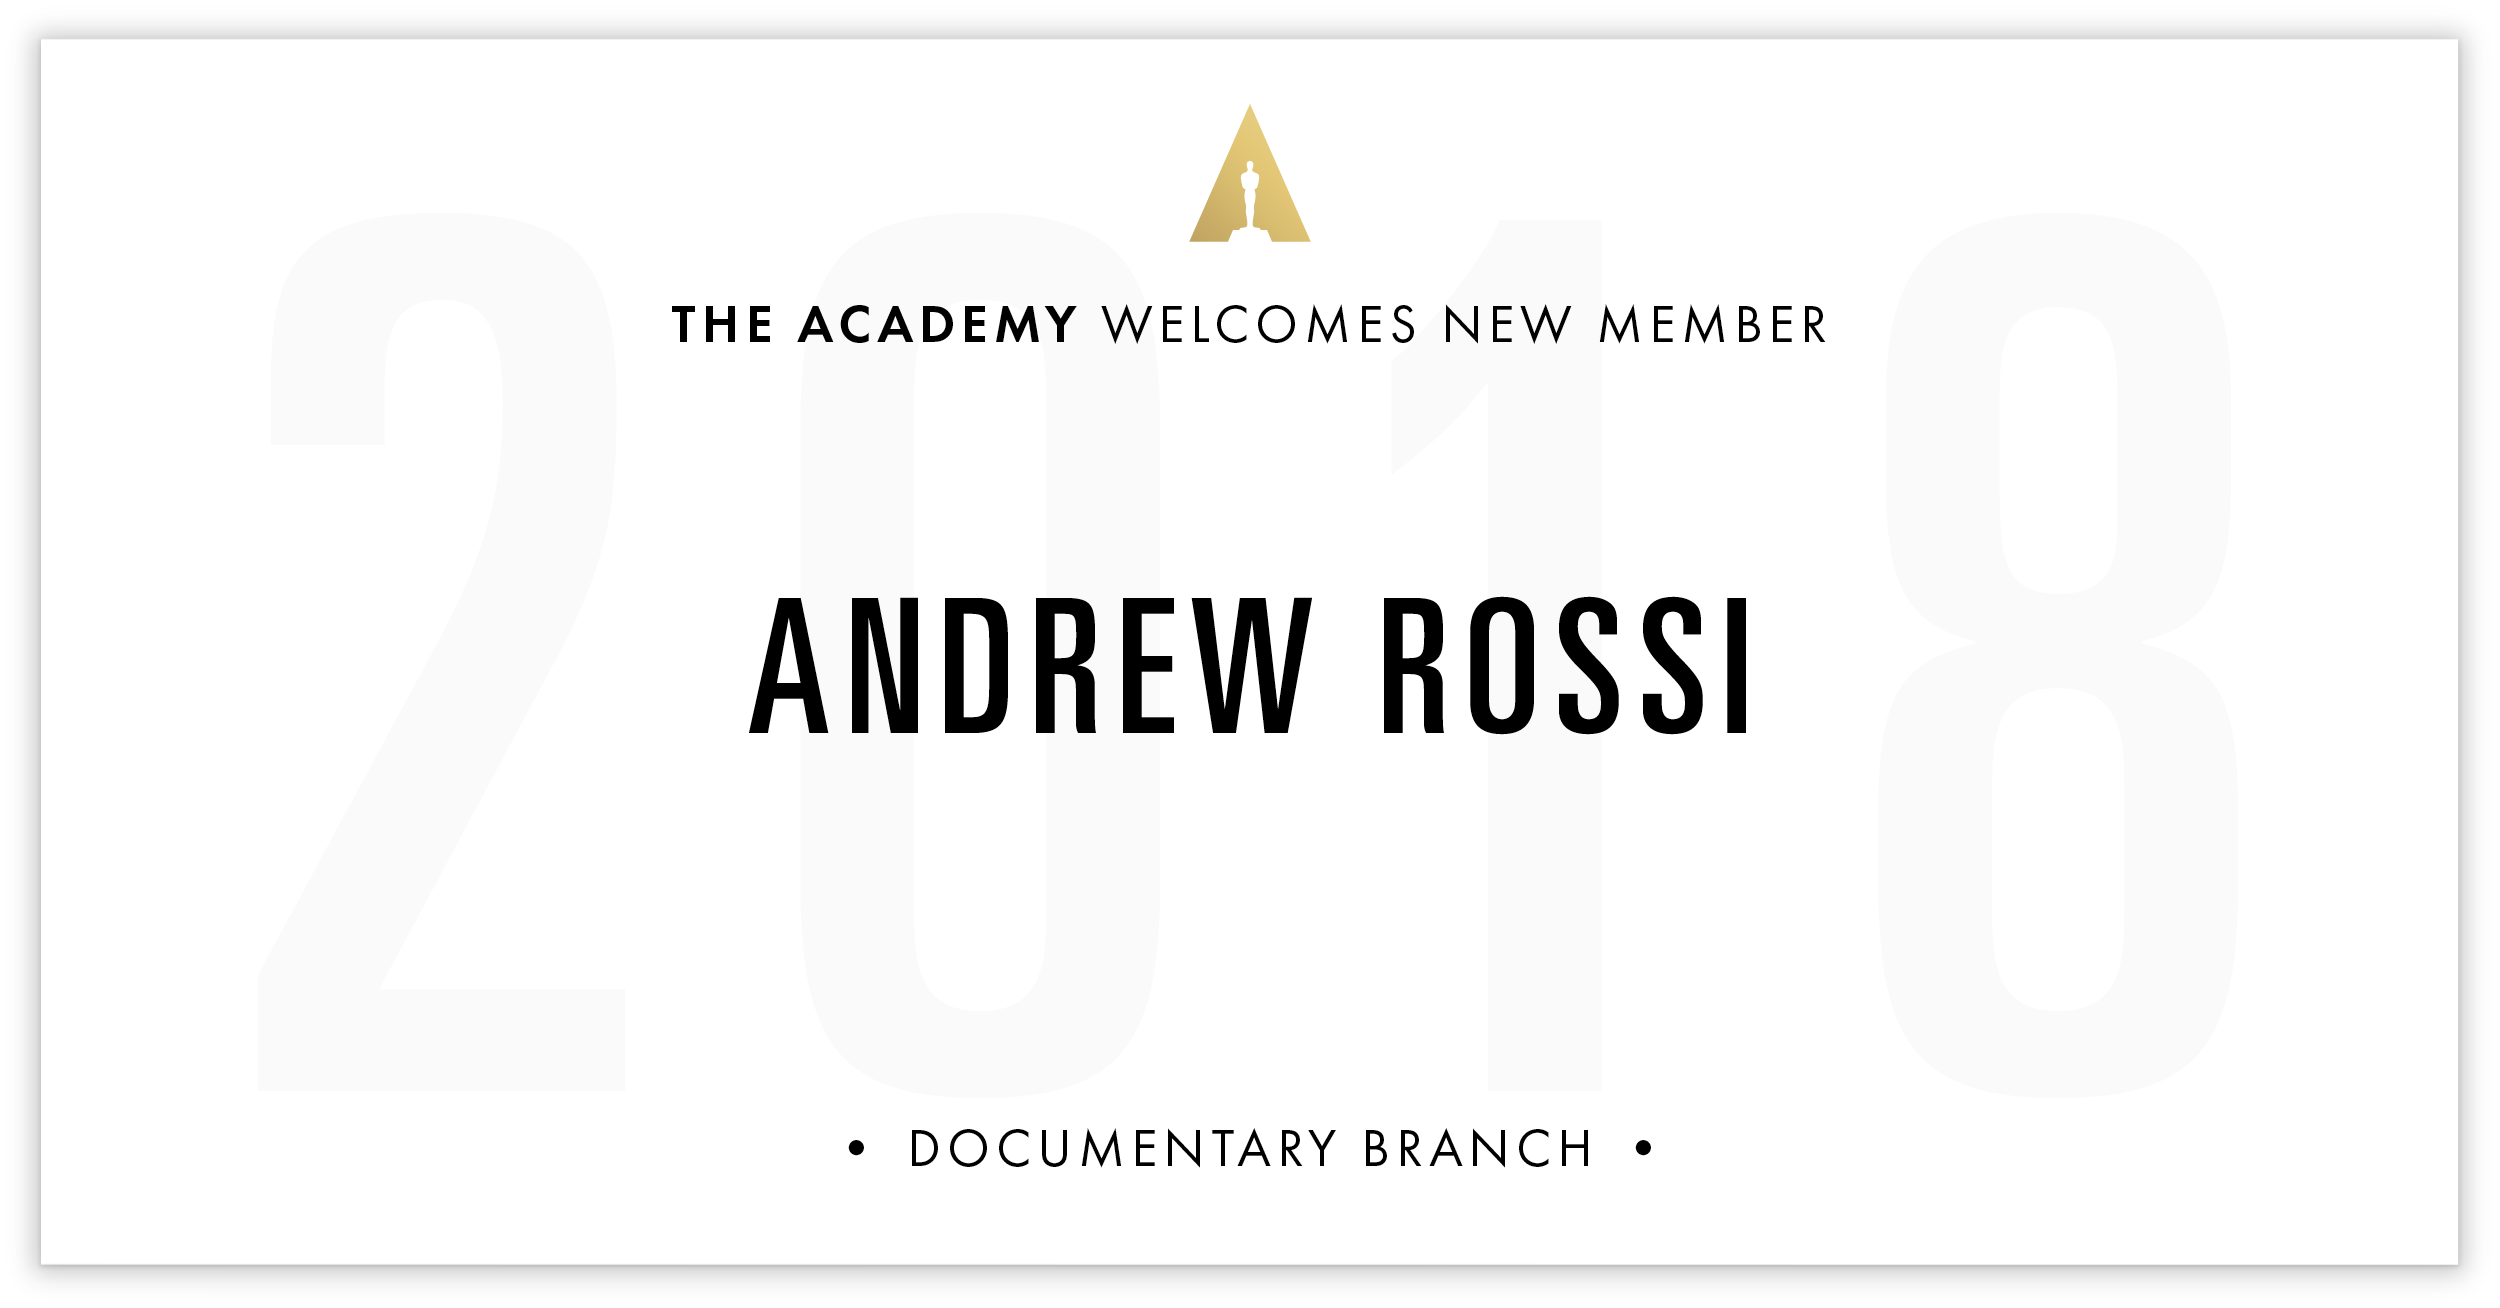 Andrew Rossi is invited!